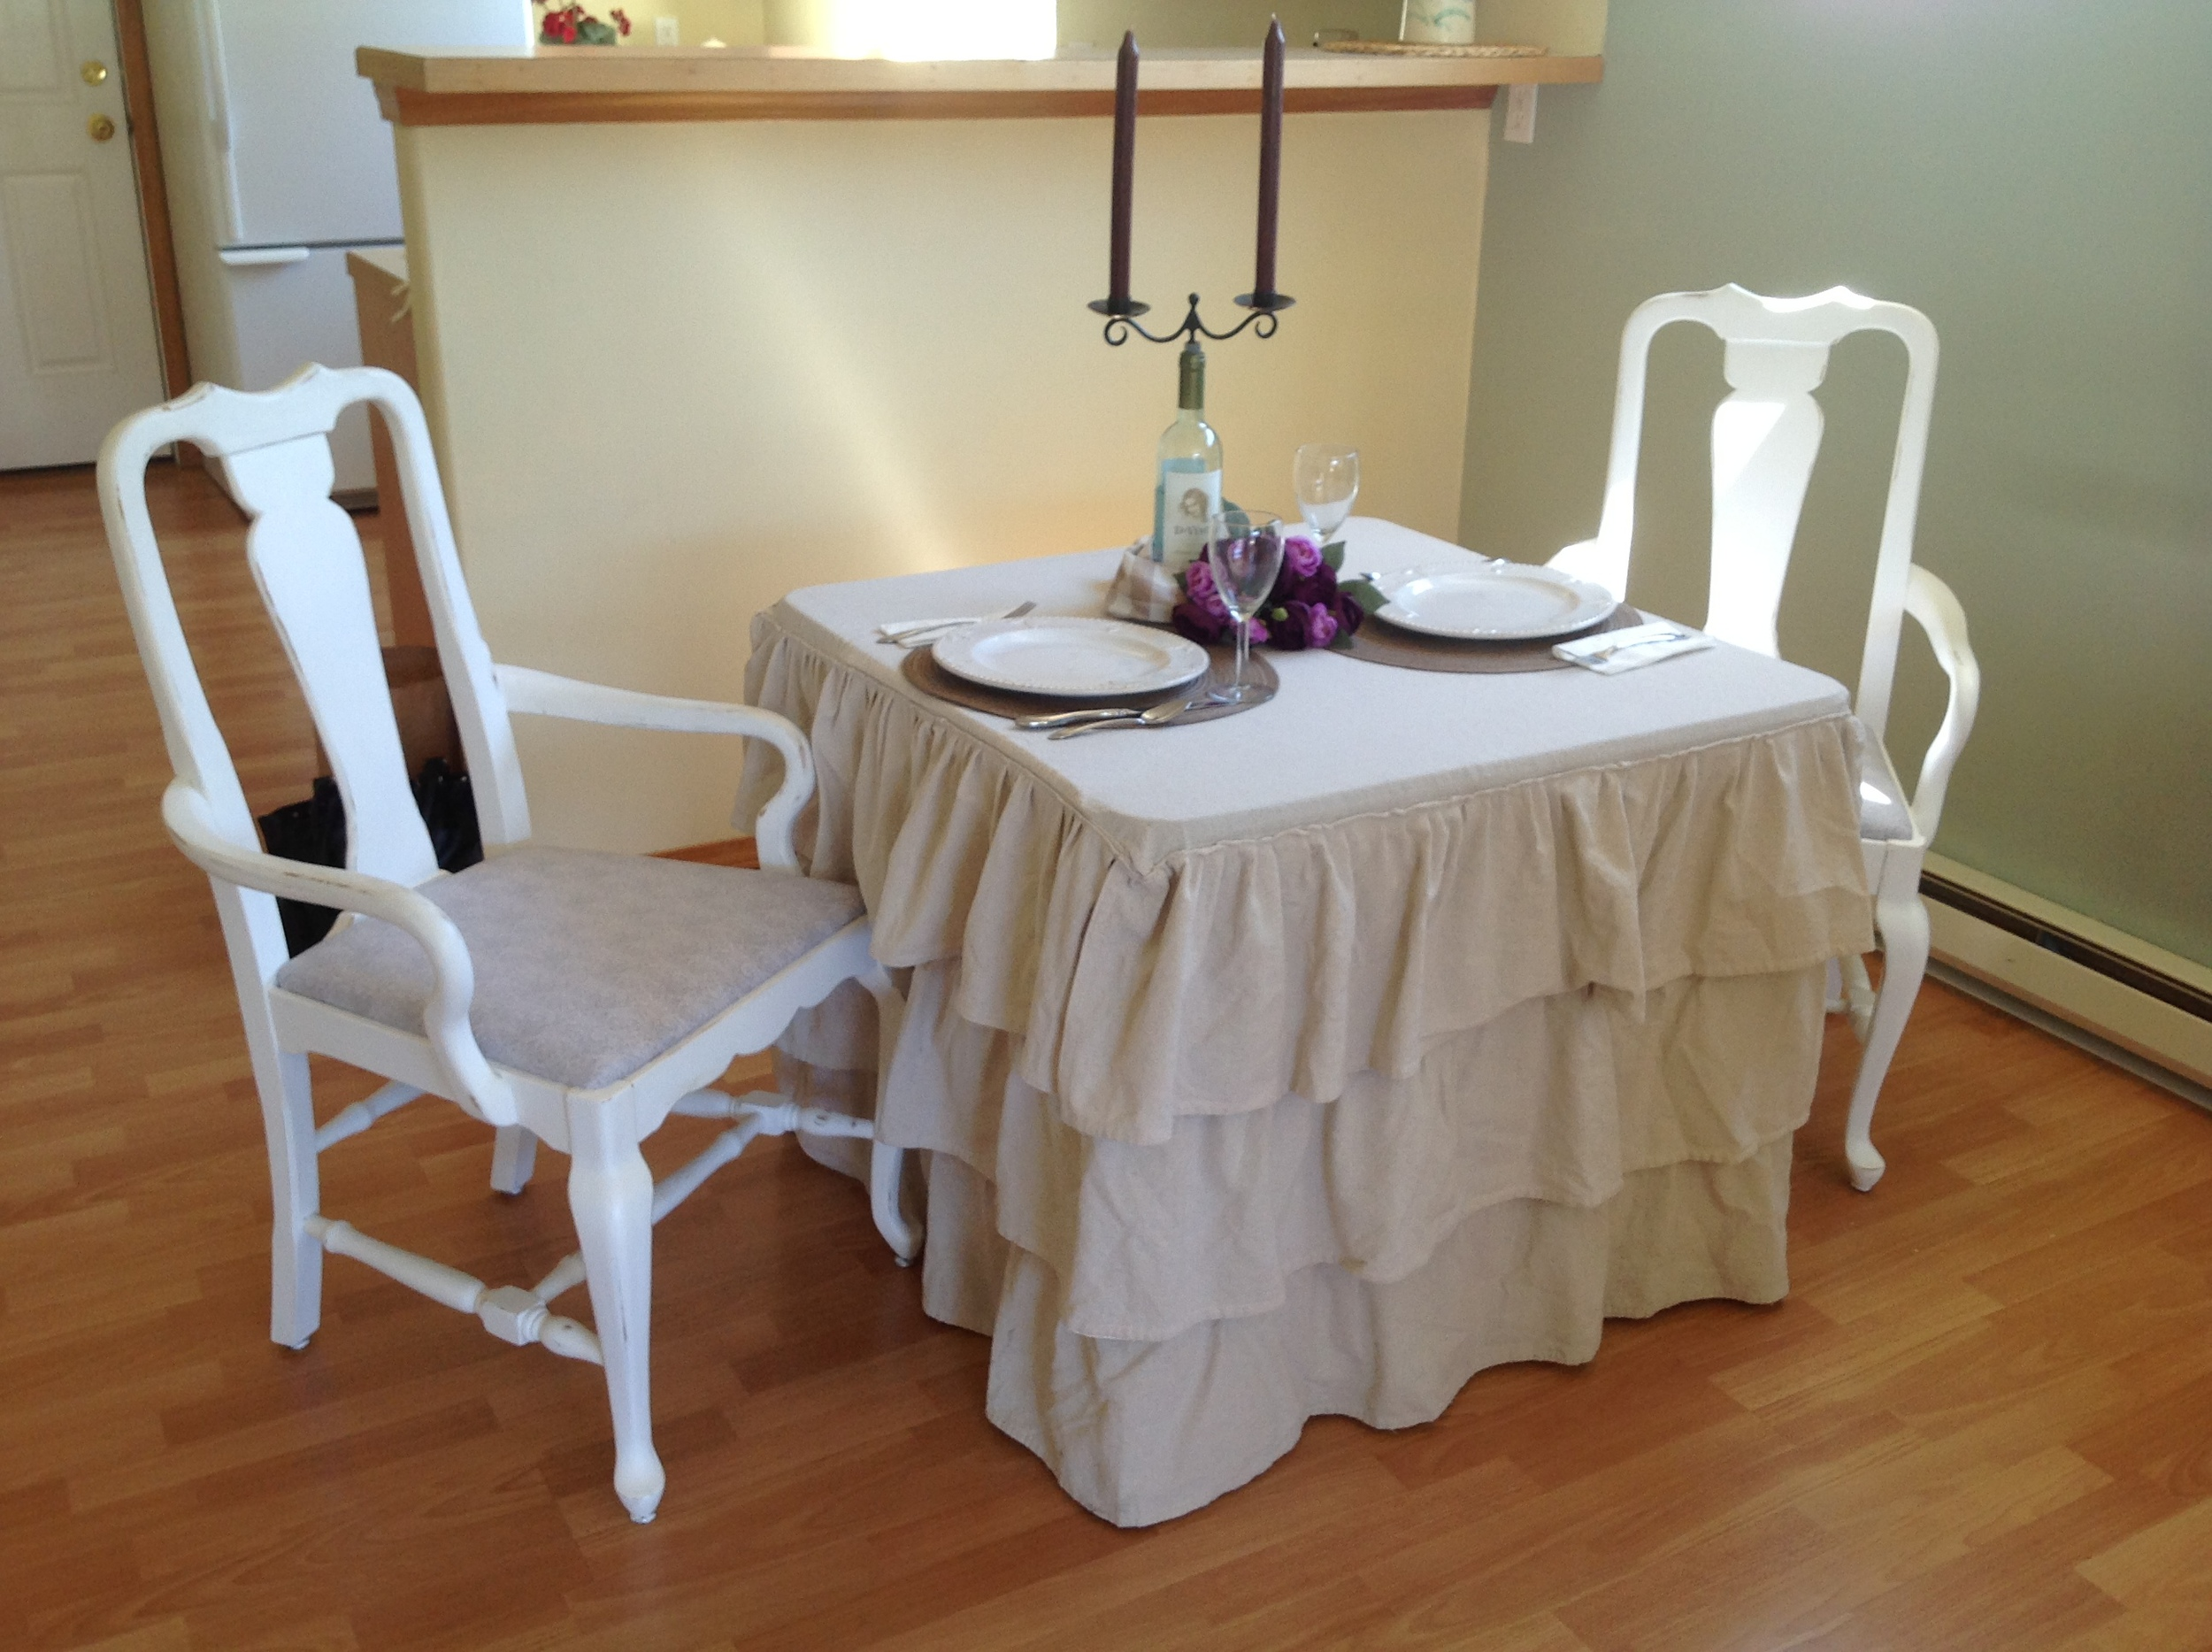 Drop cloth ruffled table cloth over card table...fine dining!